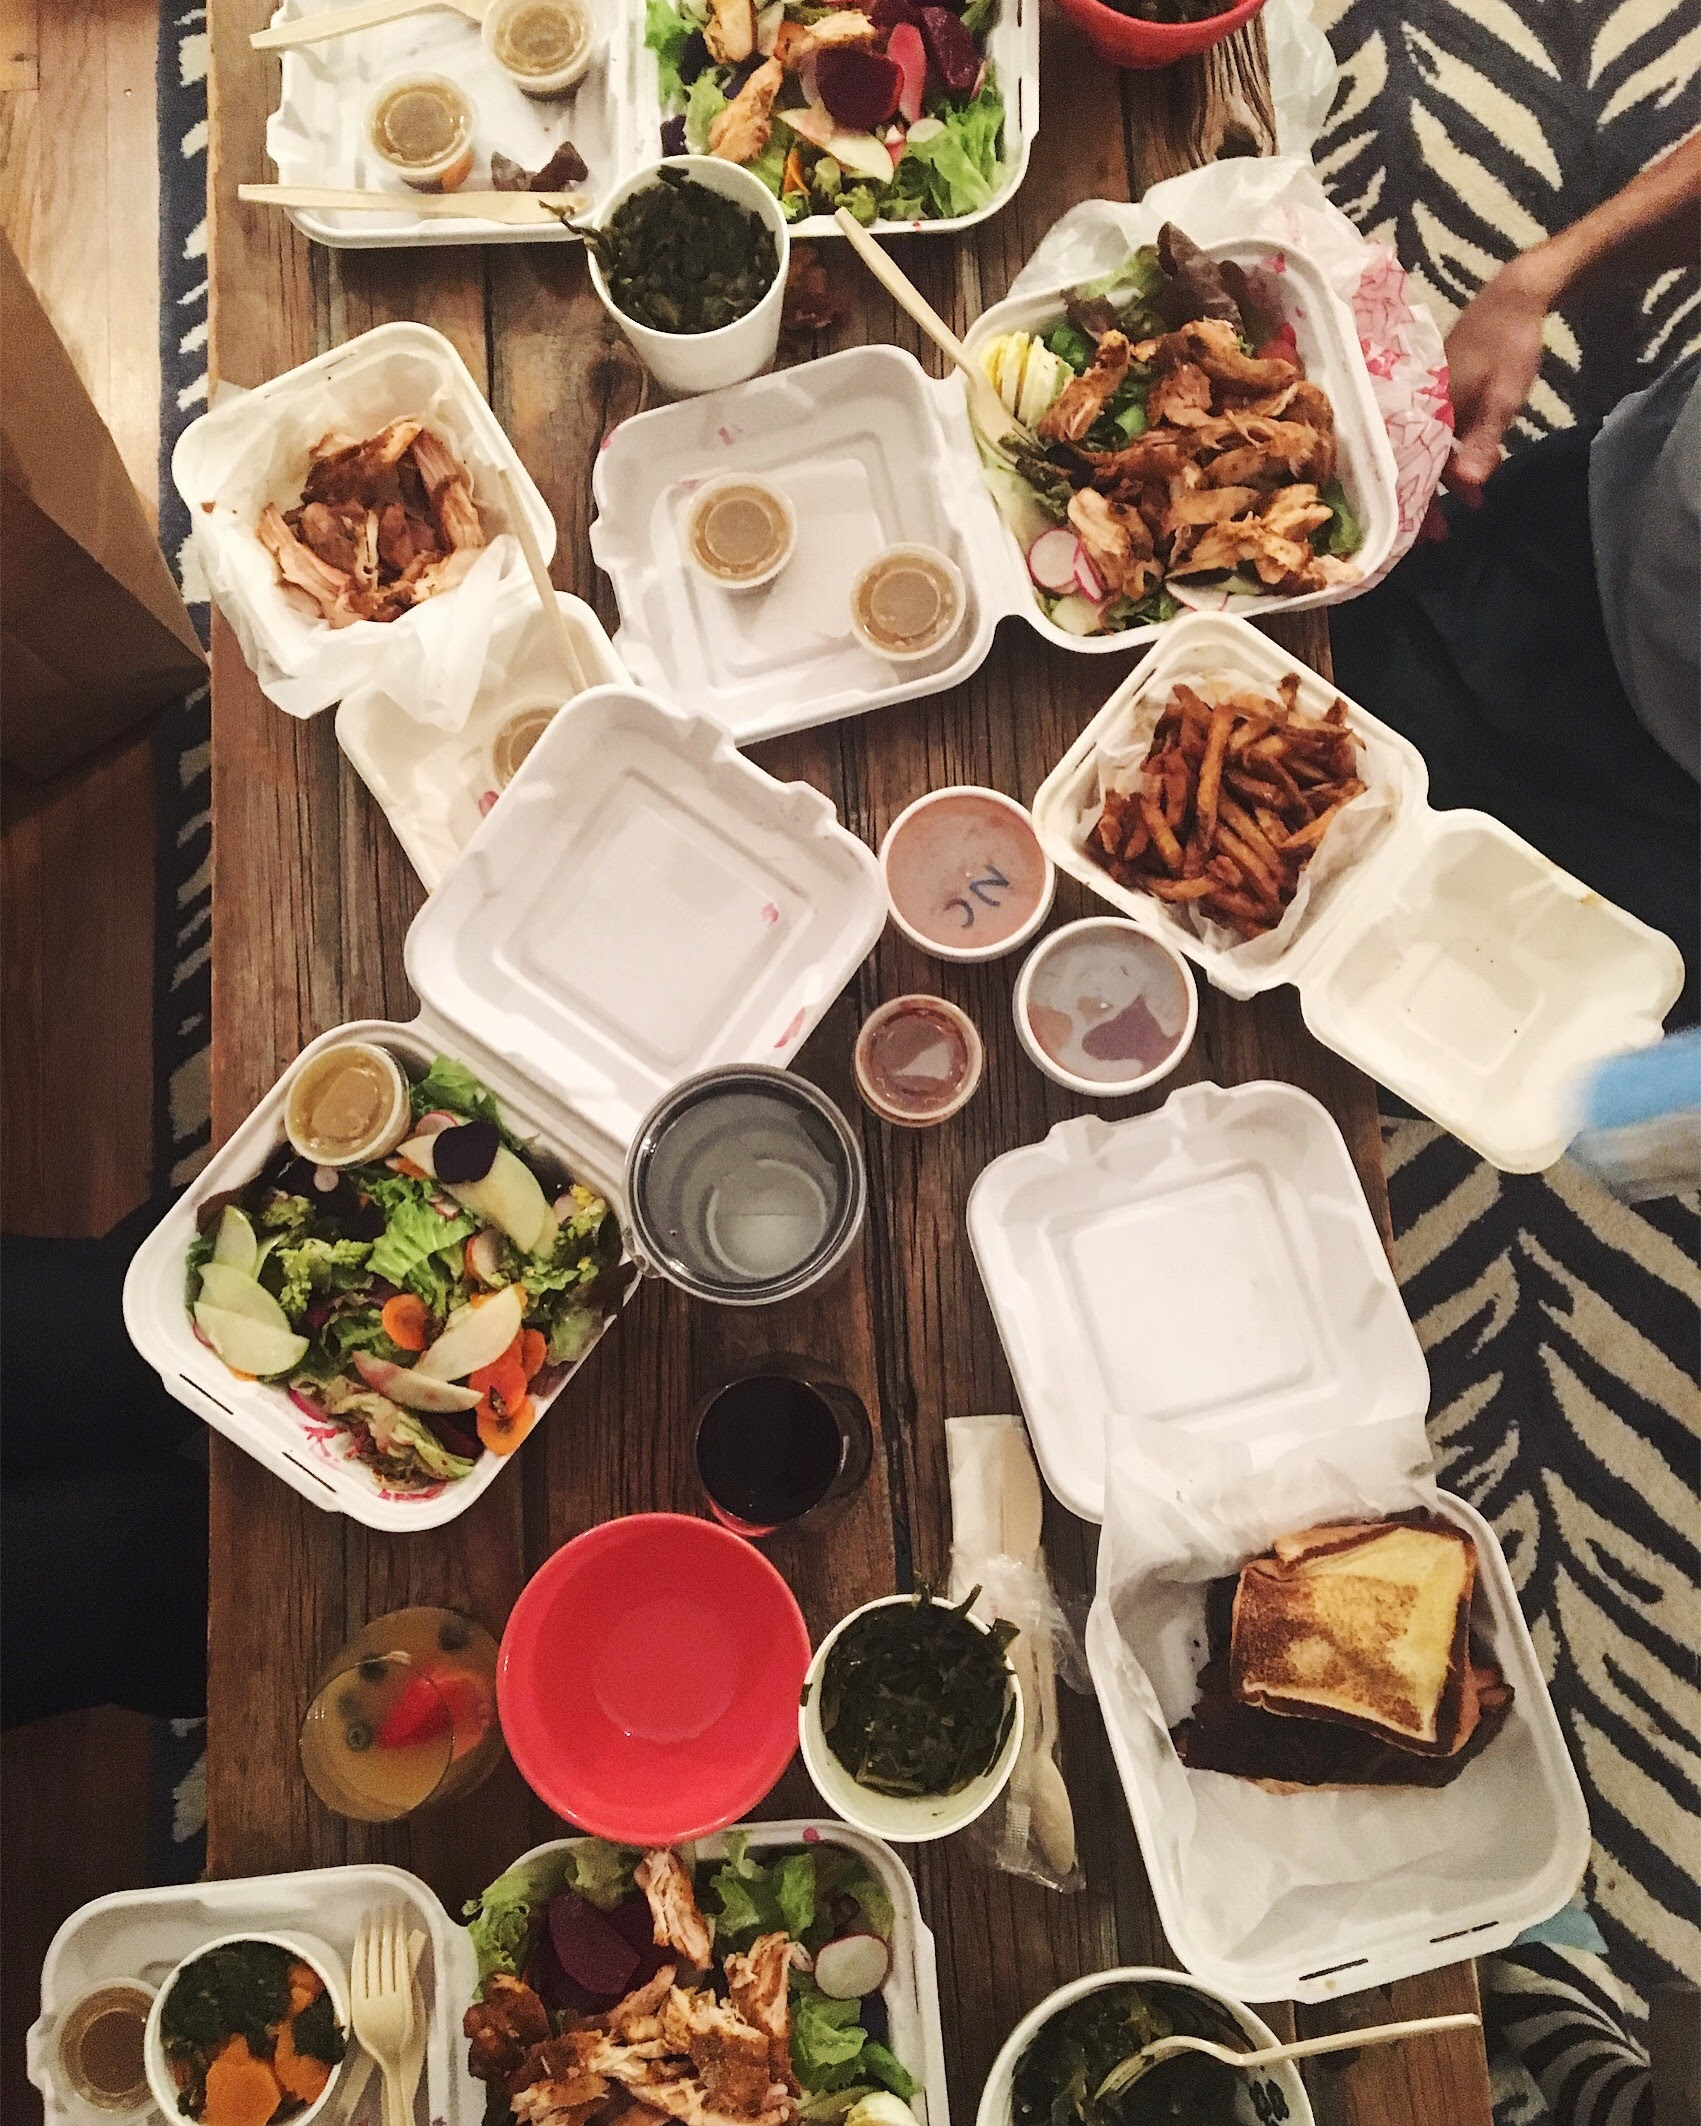 Our favorite way to dine as a family: Carry out! Community Q = such good ATL BBQ.